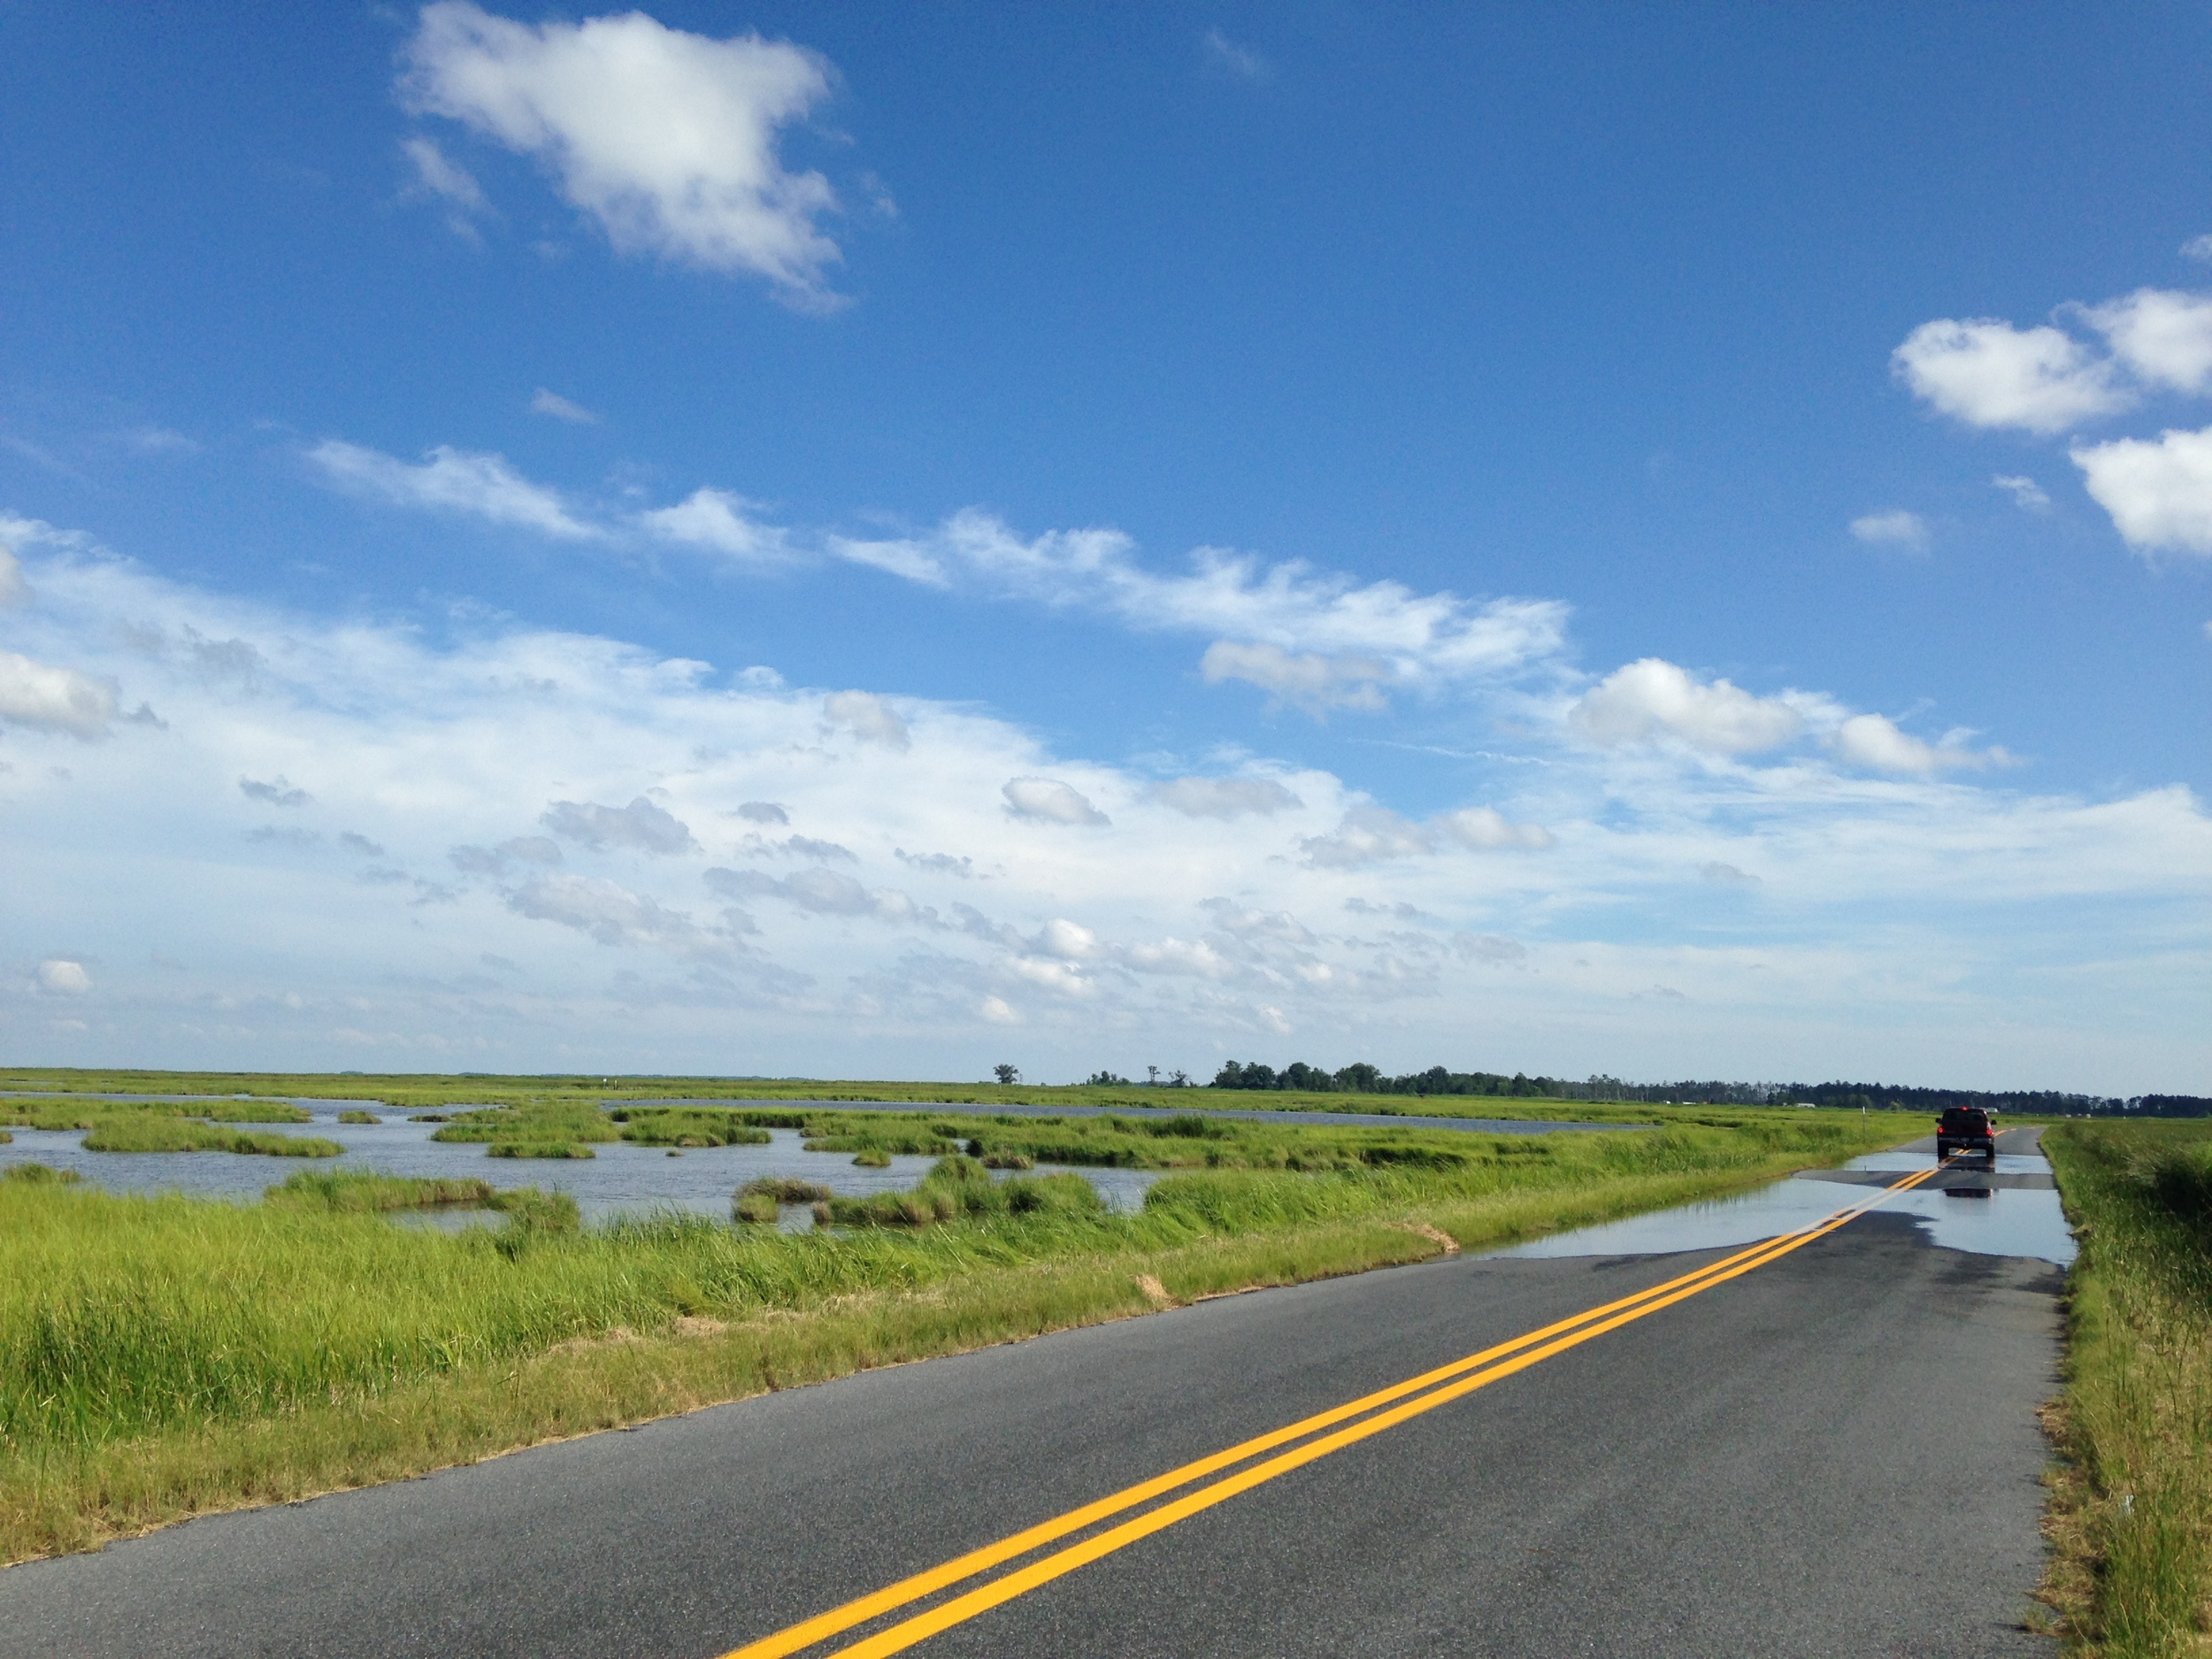 Thanks to rising seas, places like the Blackwater National Wildlife Refuge are quickly losing ground and water frequently covers roads like this one even in calm weather.